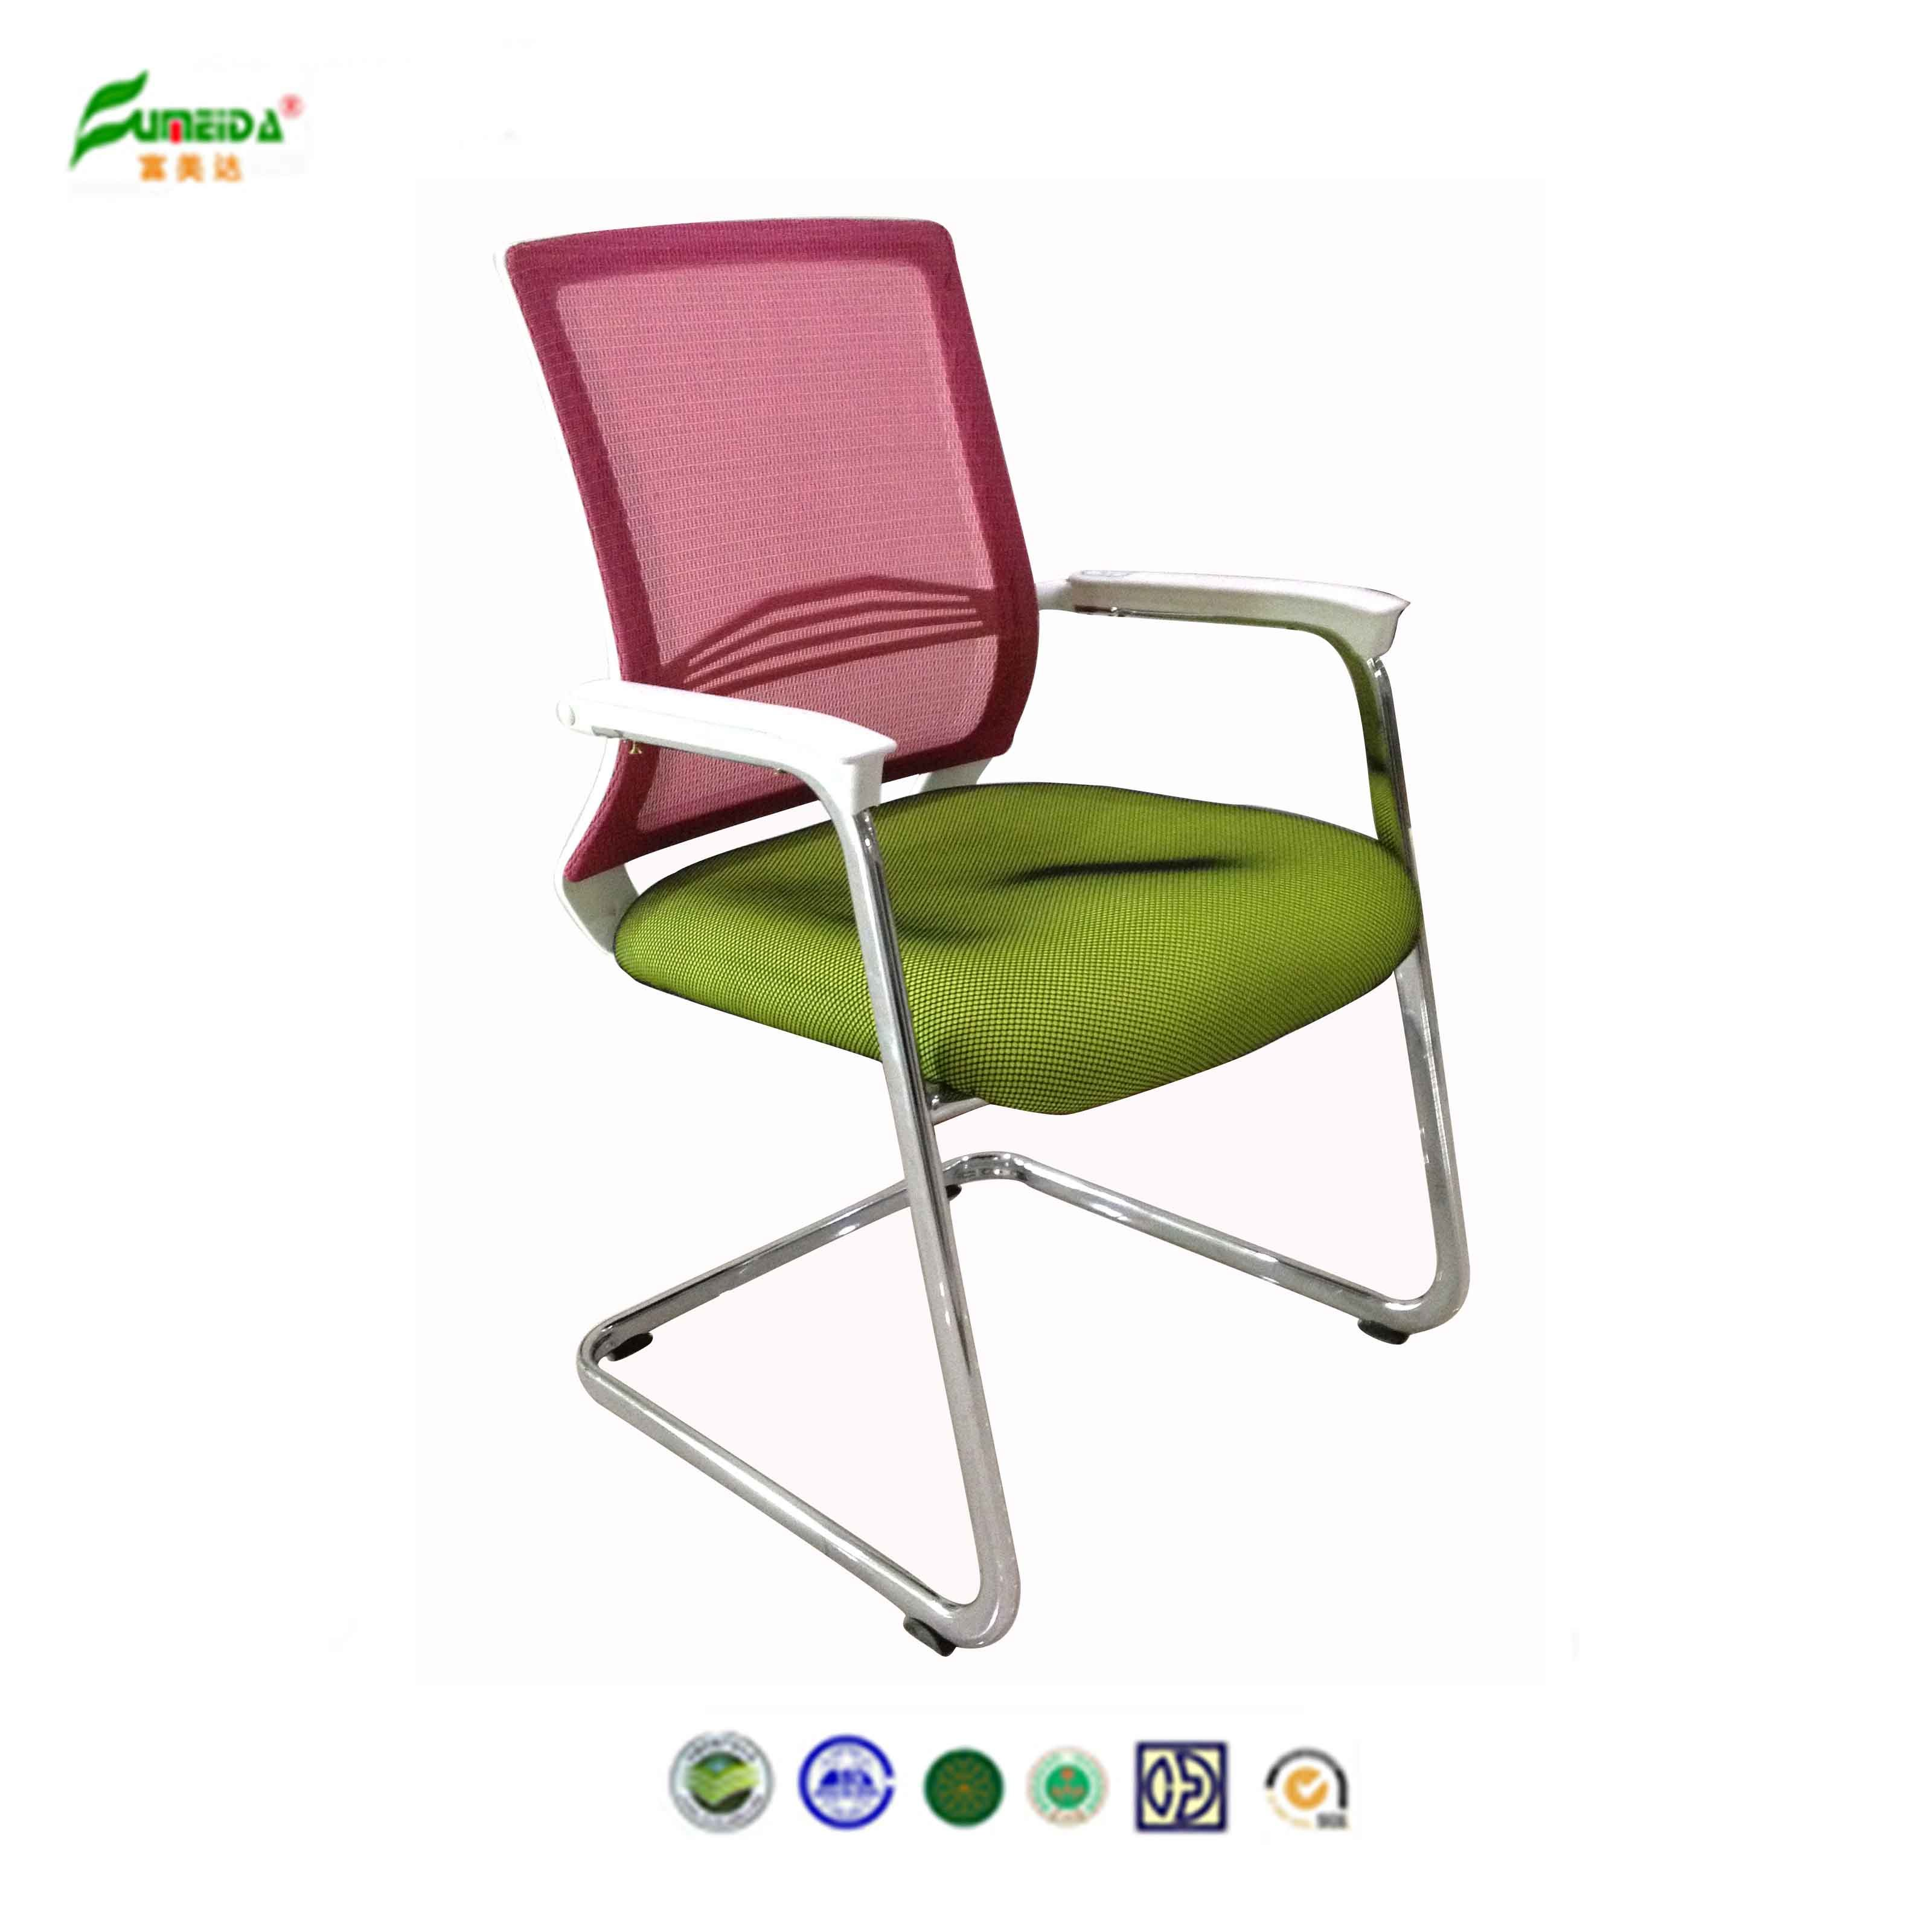 New Staff Chair, Office Furniture, Ergonomic Mesh Office Chair